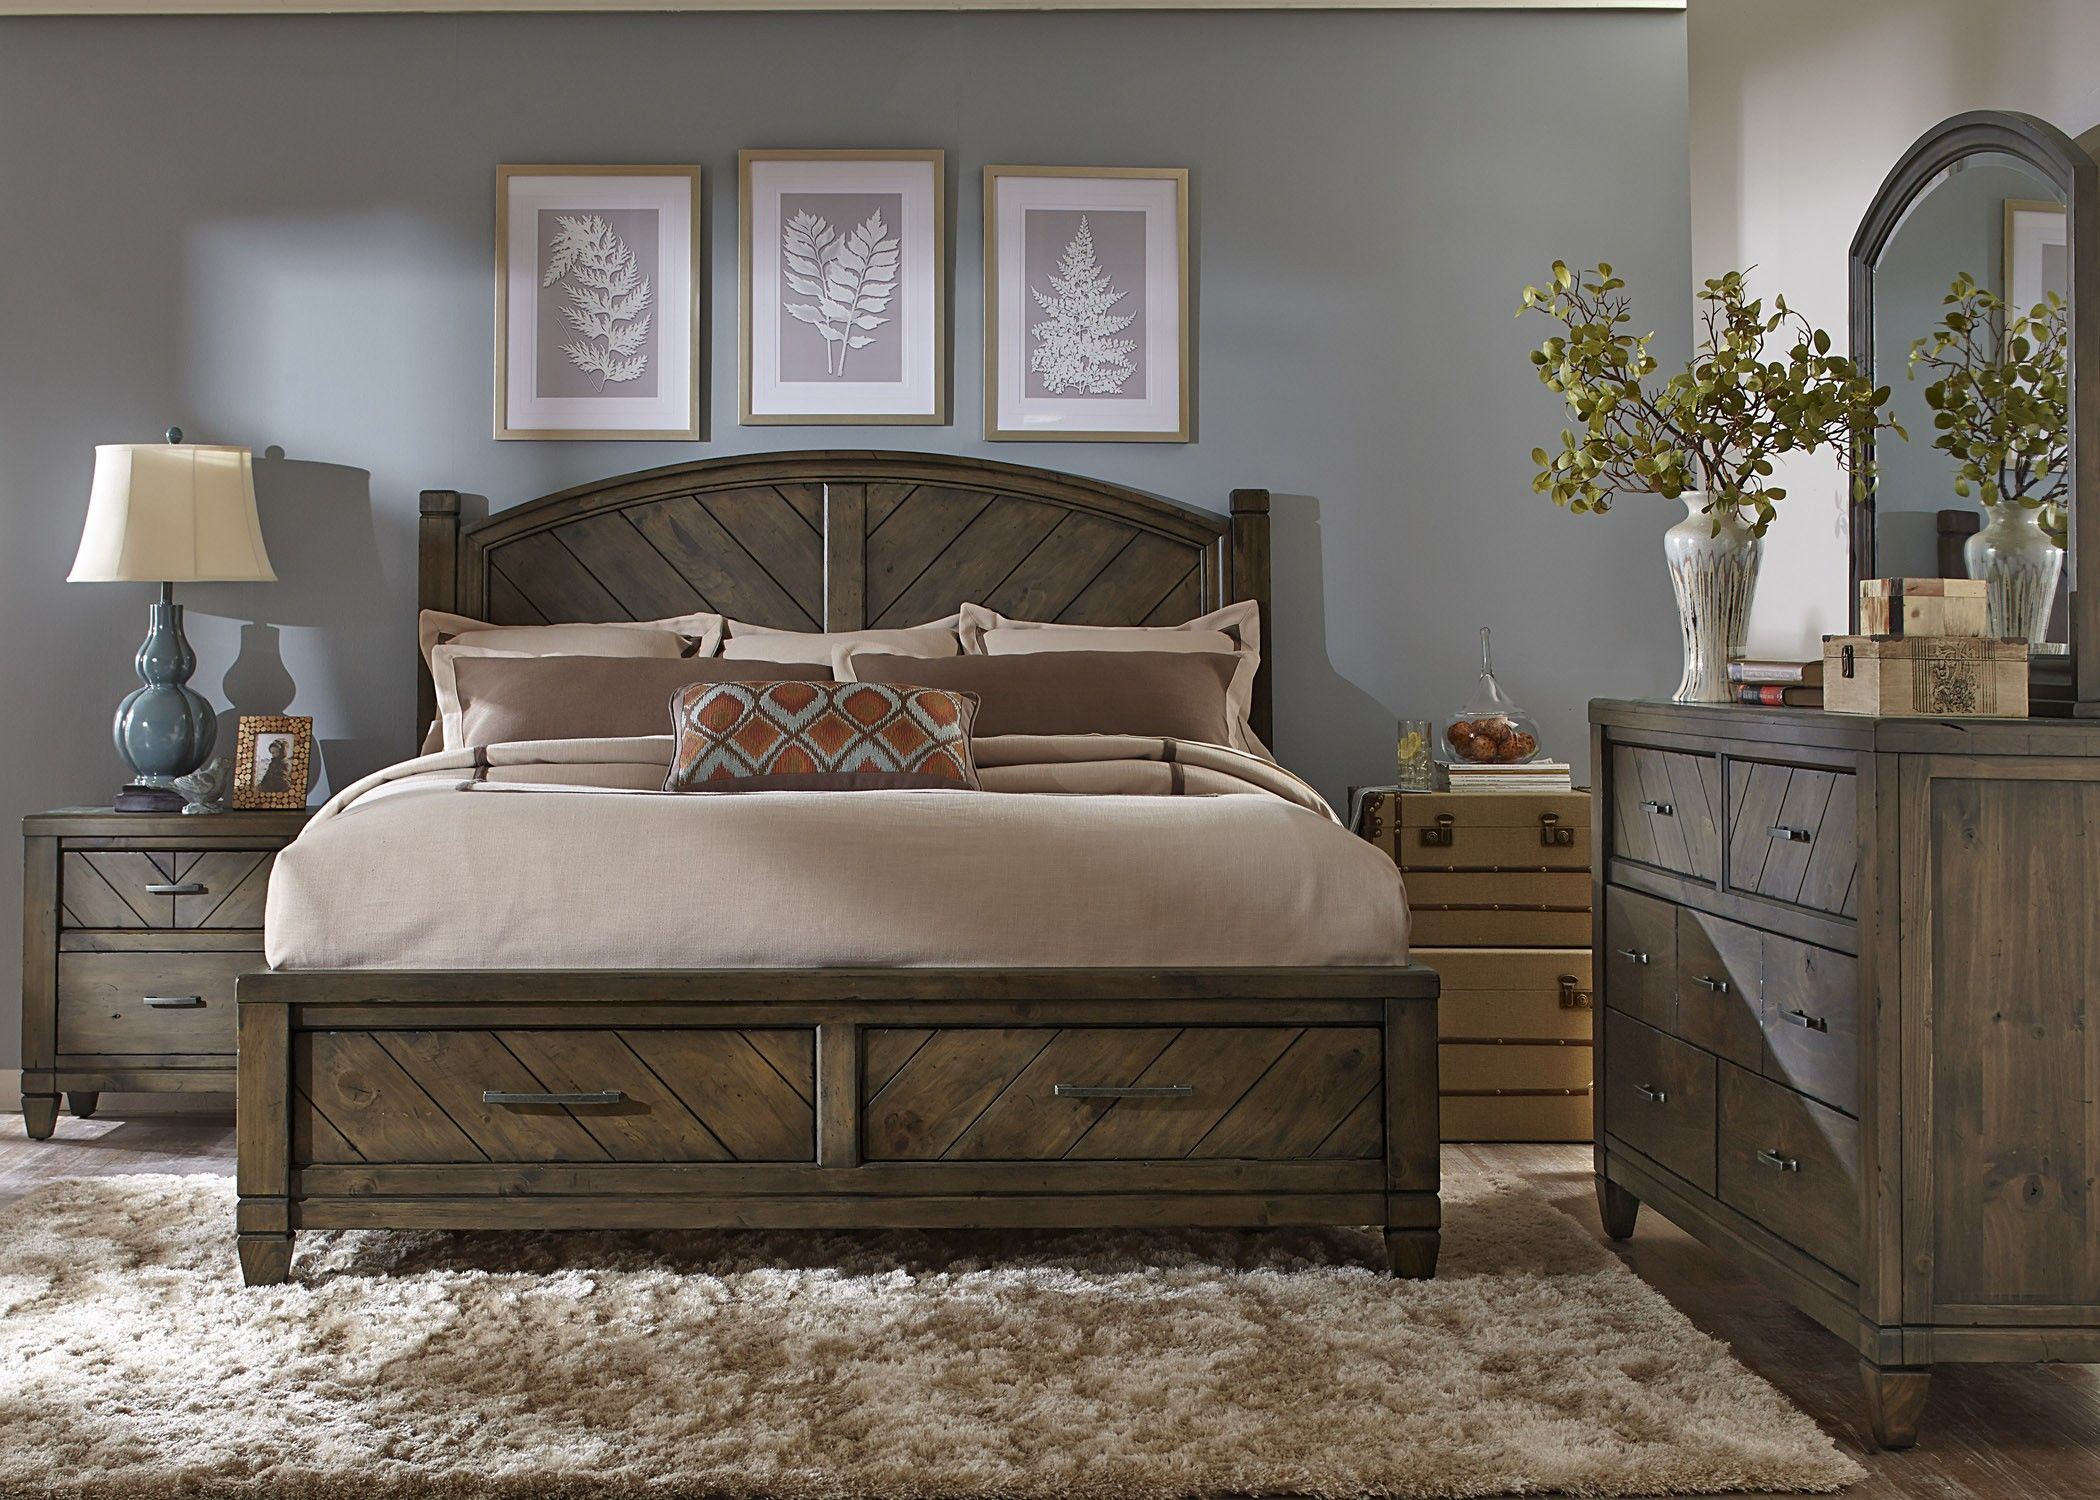 modern country style bedroom ideas